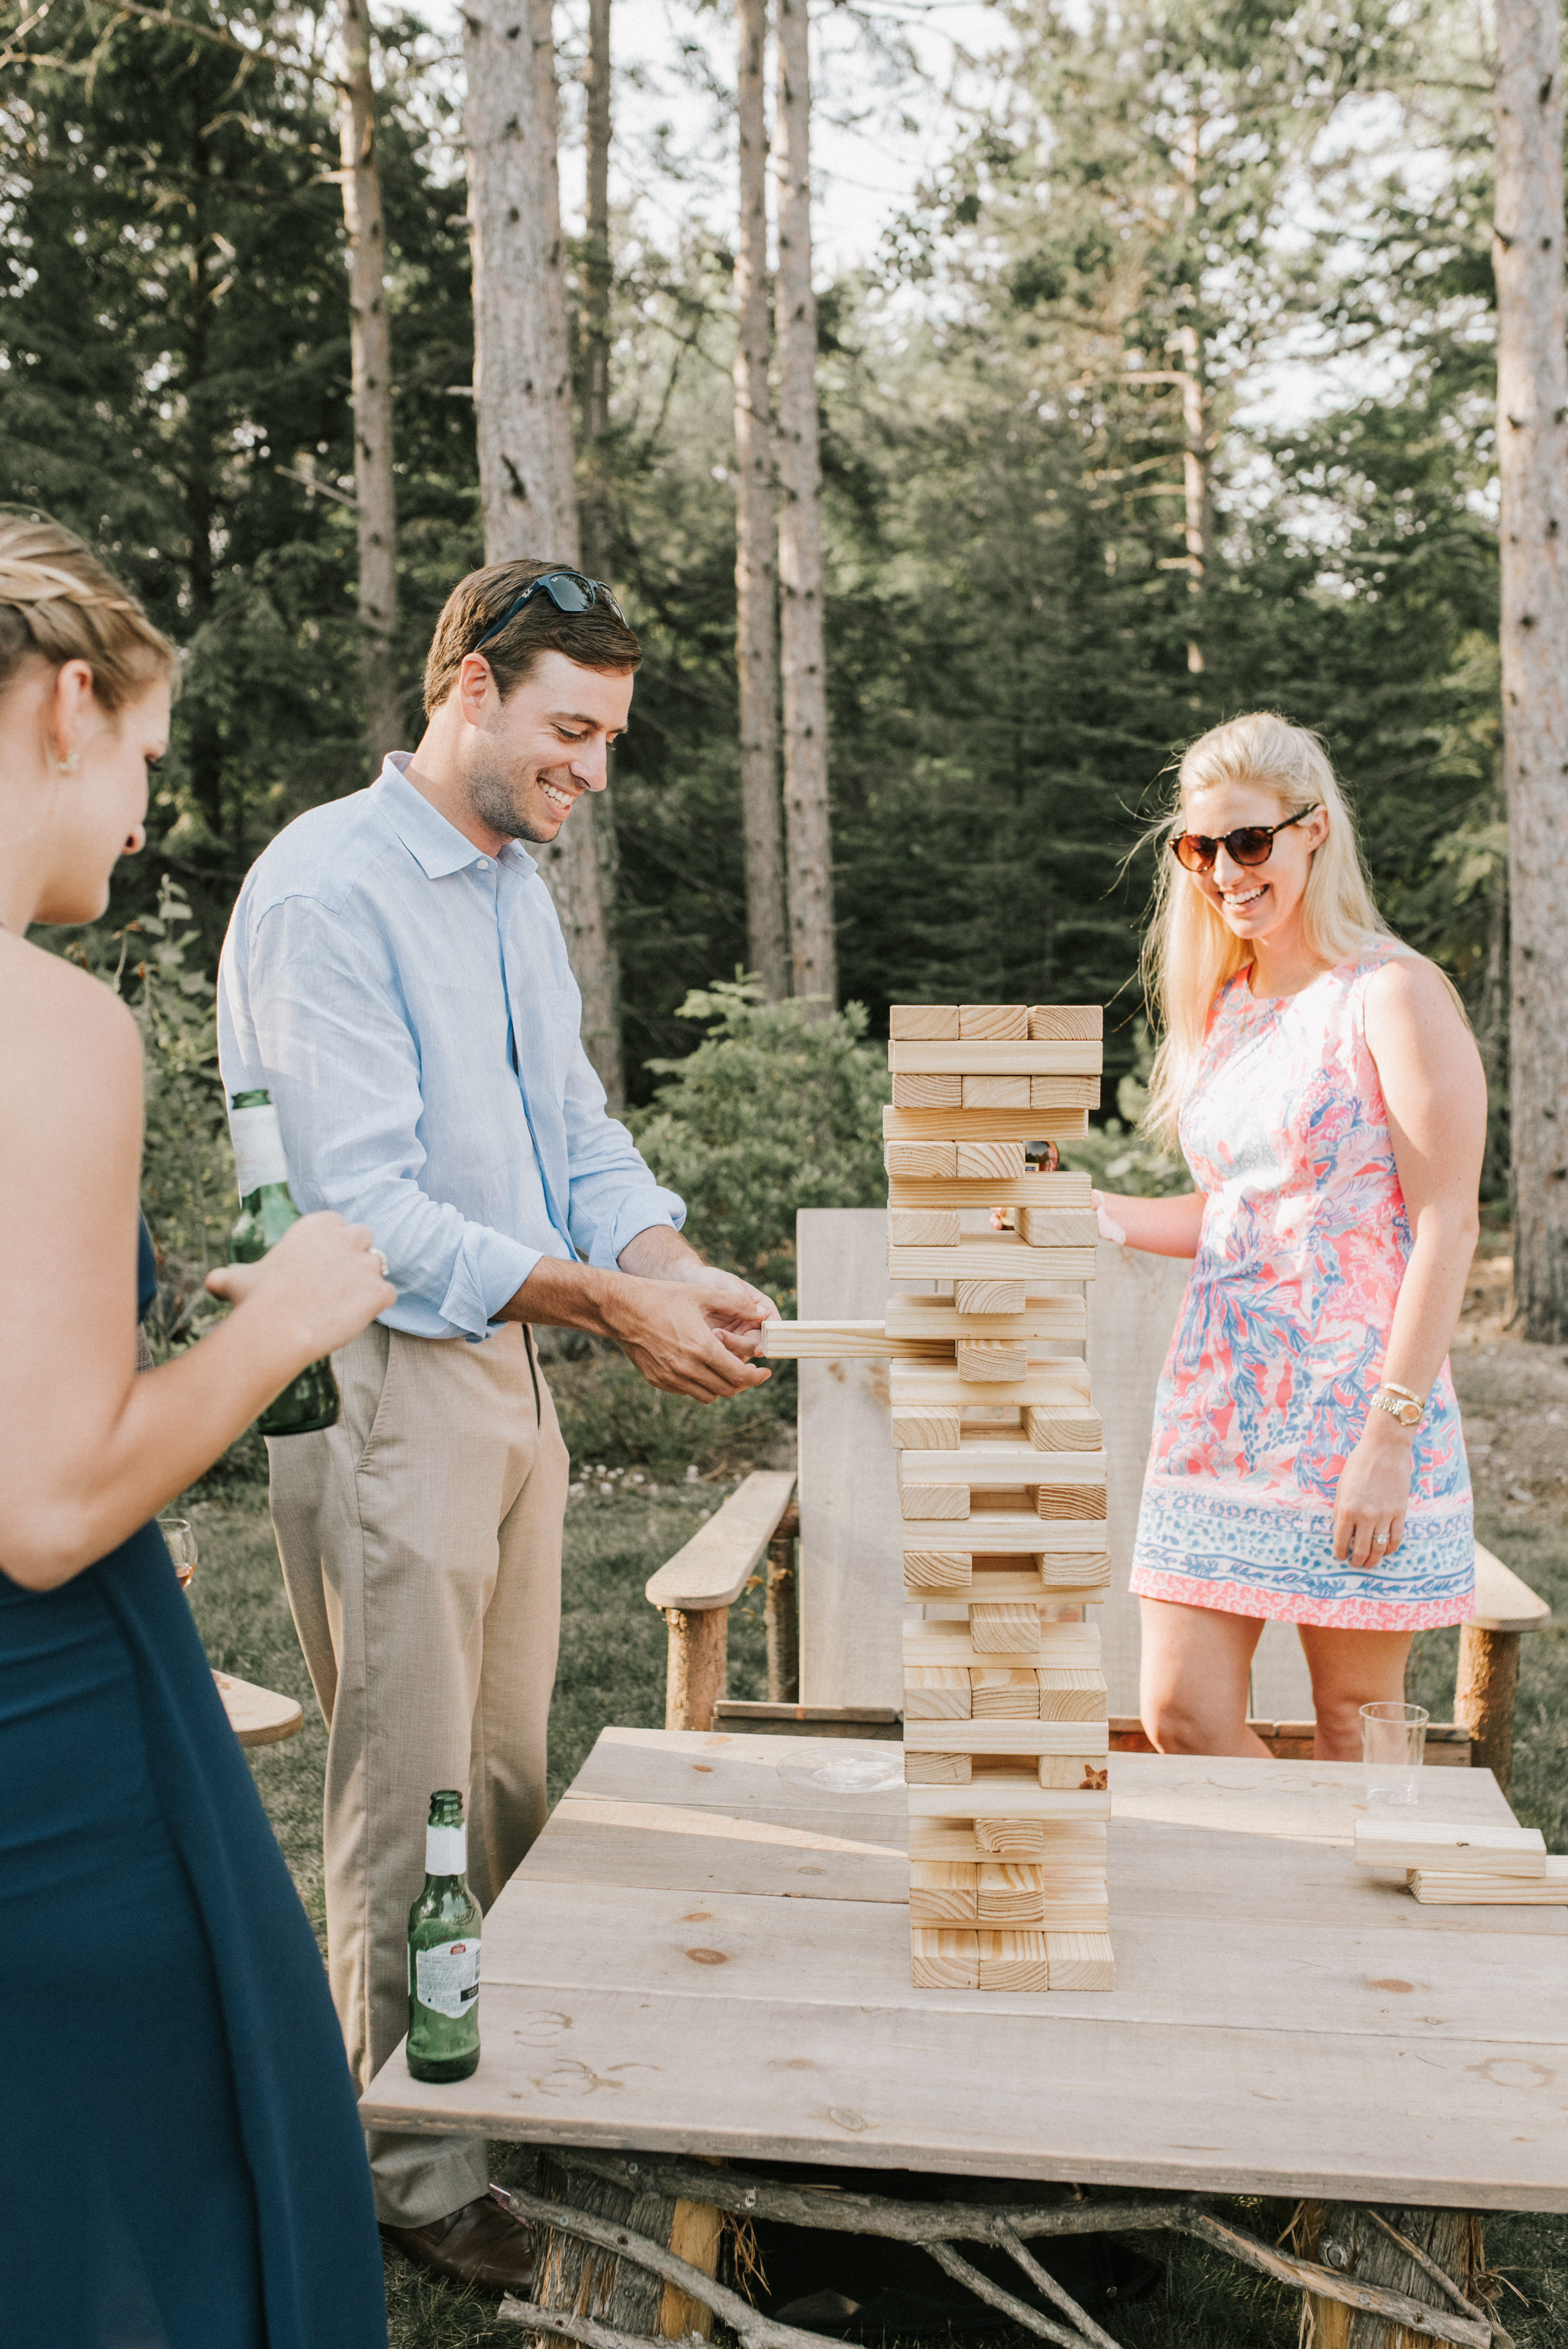 Giant jenga for weddings - A Family Affair of Maine rental